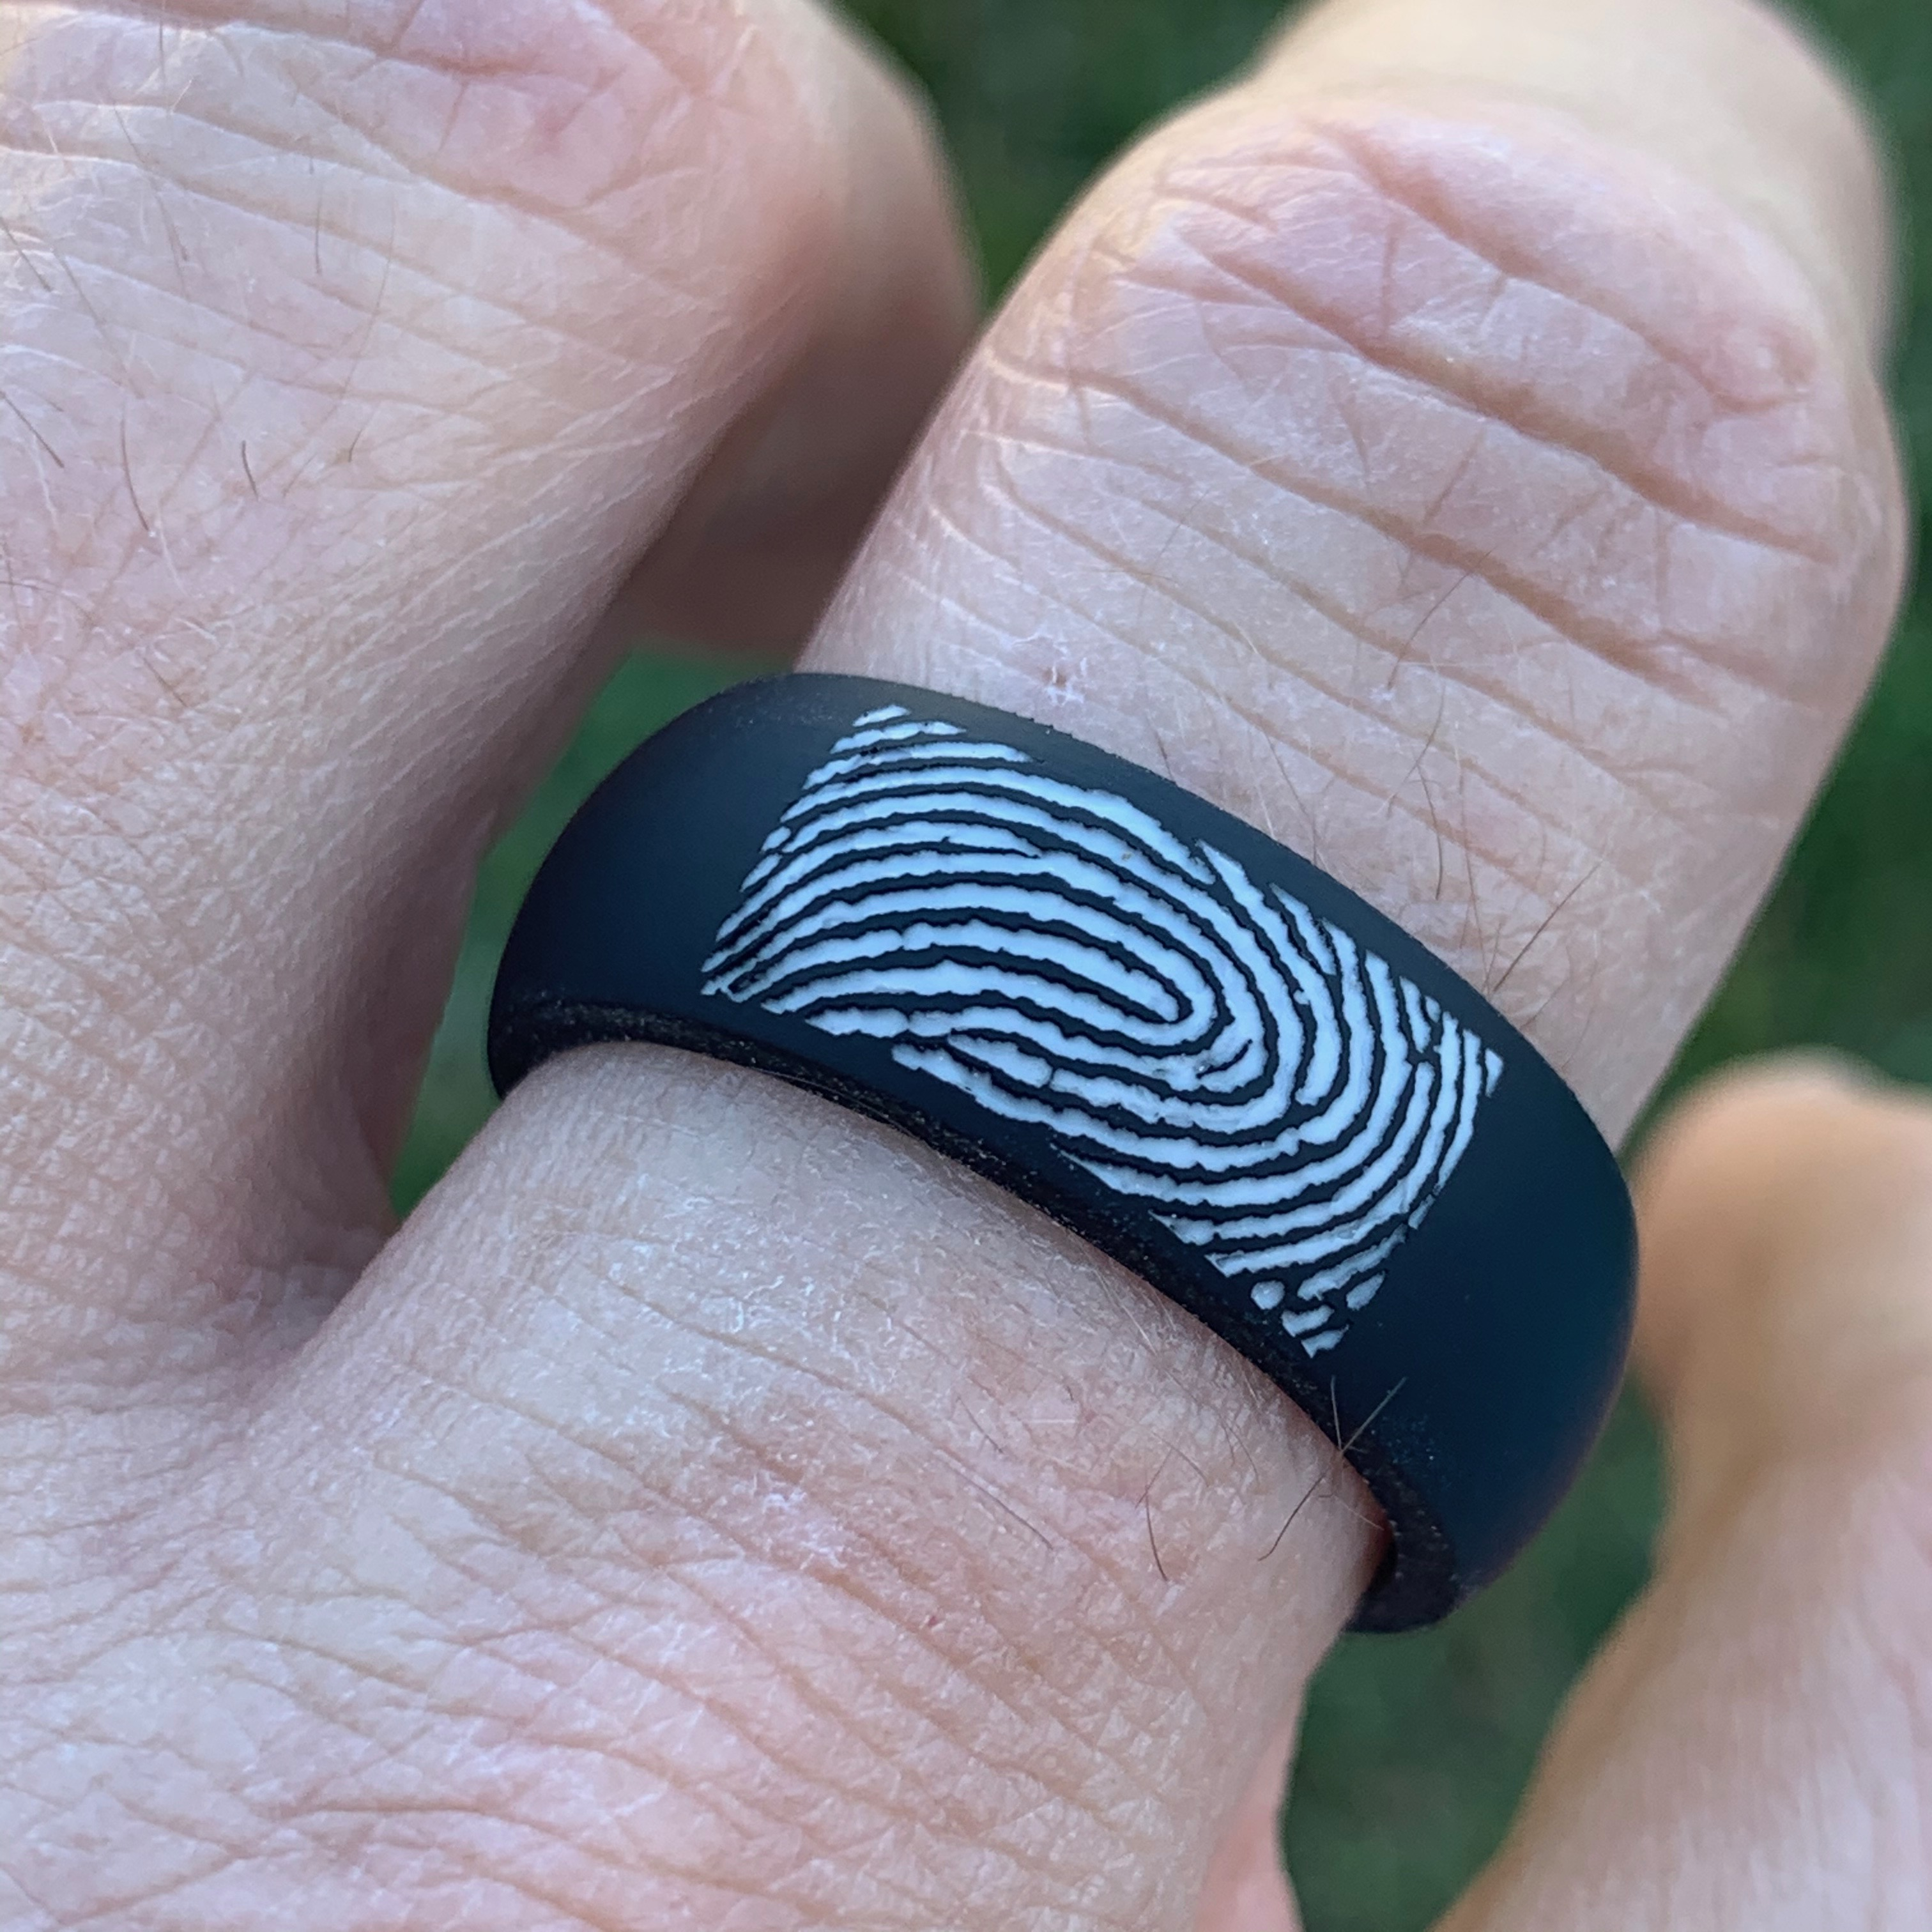 Black 8mm Silicone Fingerprint ring by Brent & Jess